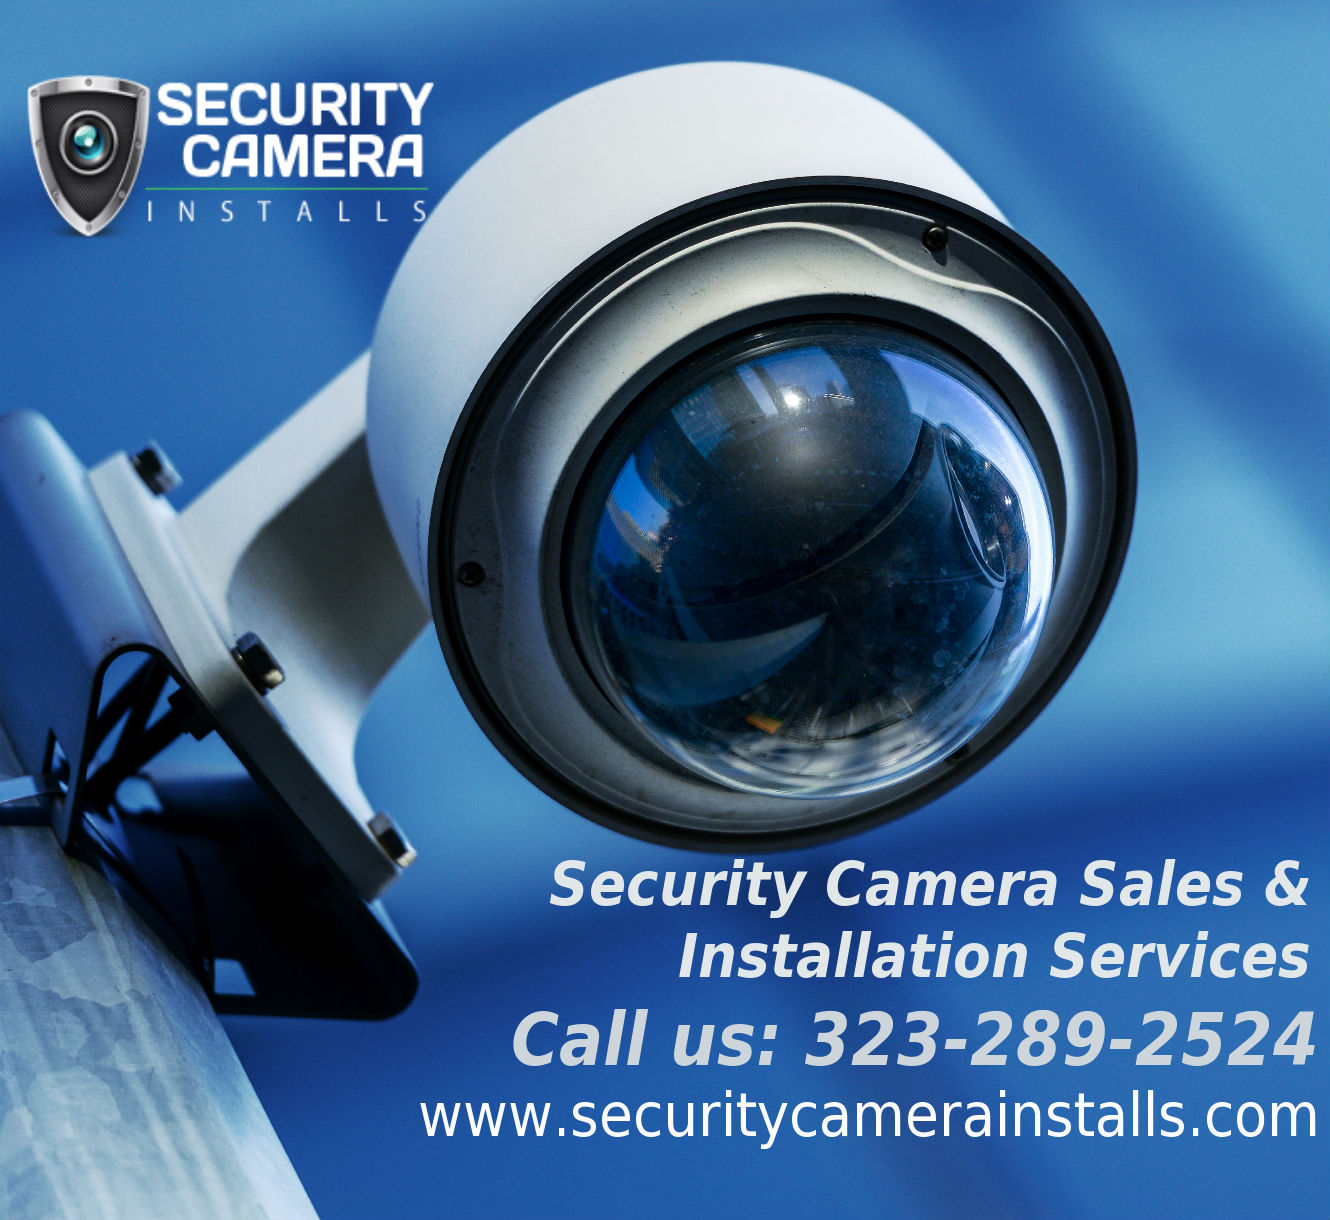 Home security security cameras home security Best home security los angeles